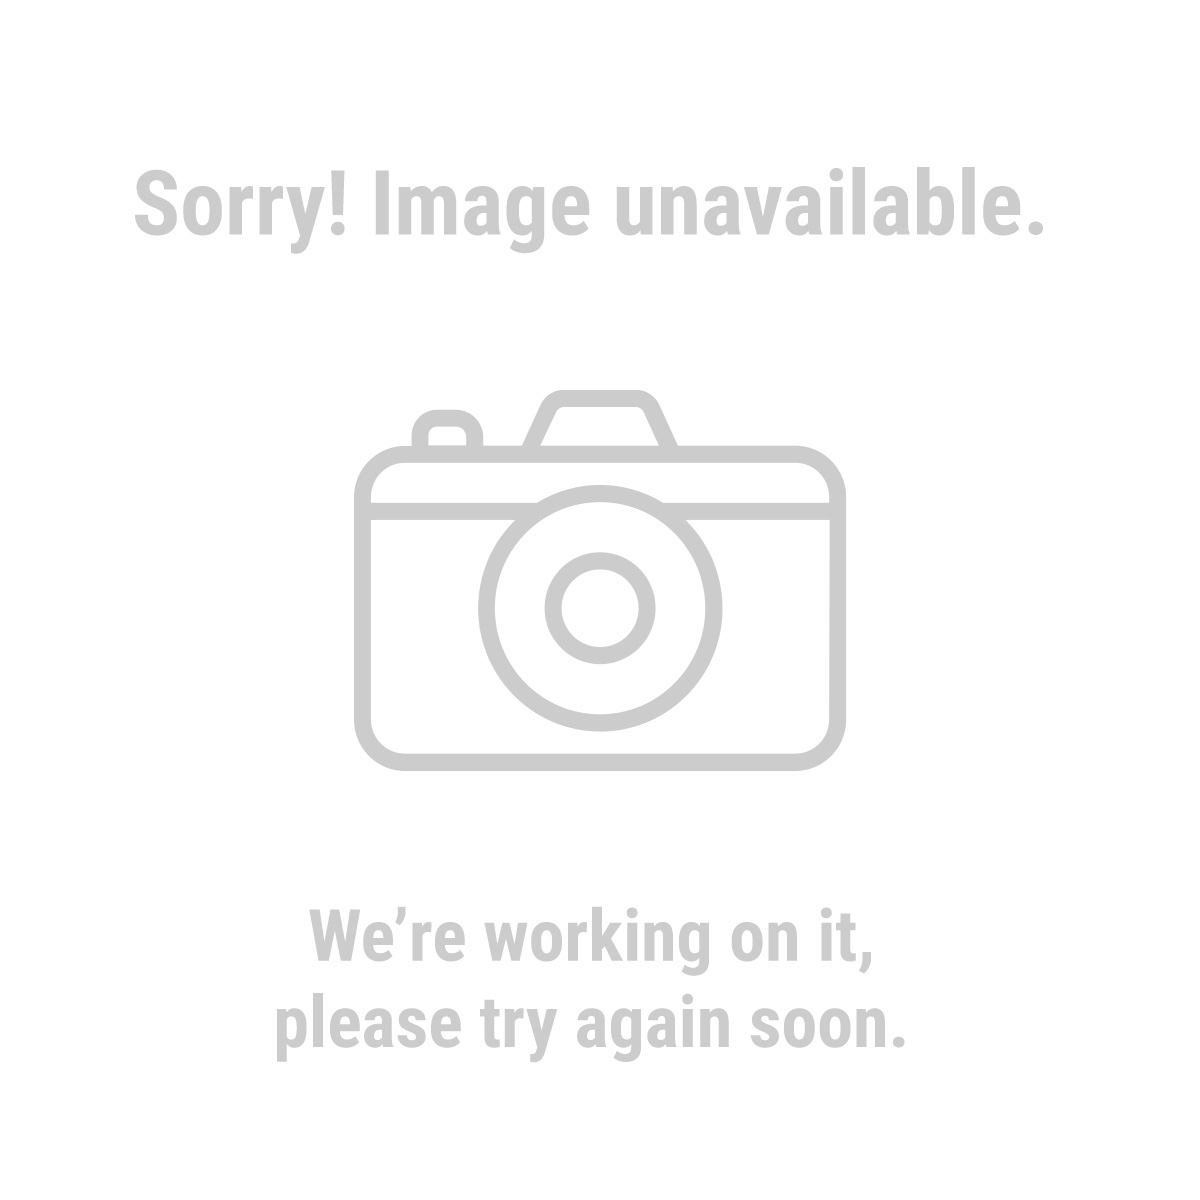 Handstands 62515 Step Stool/Working Platform